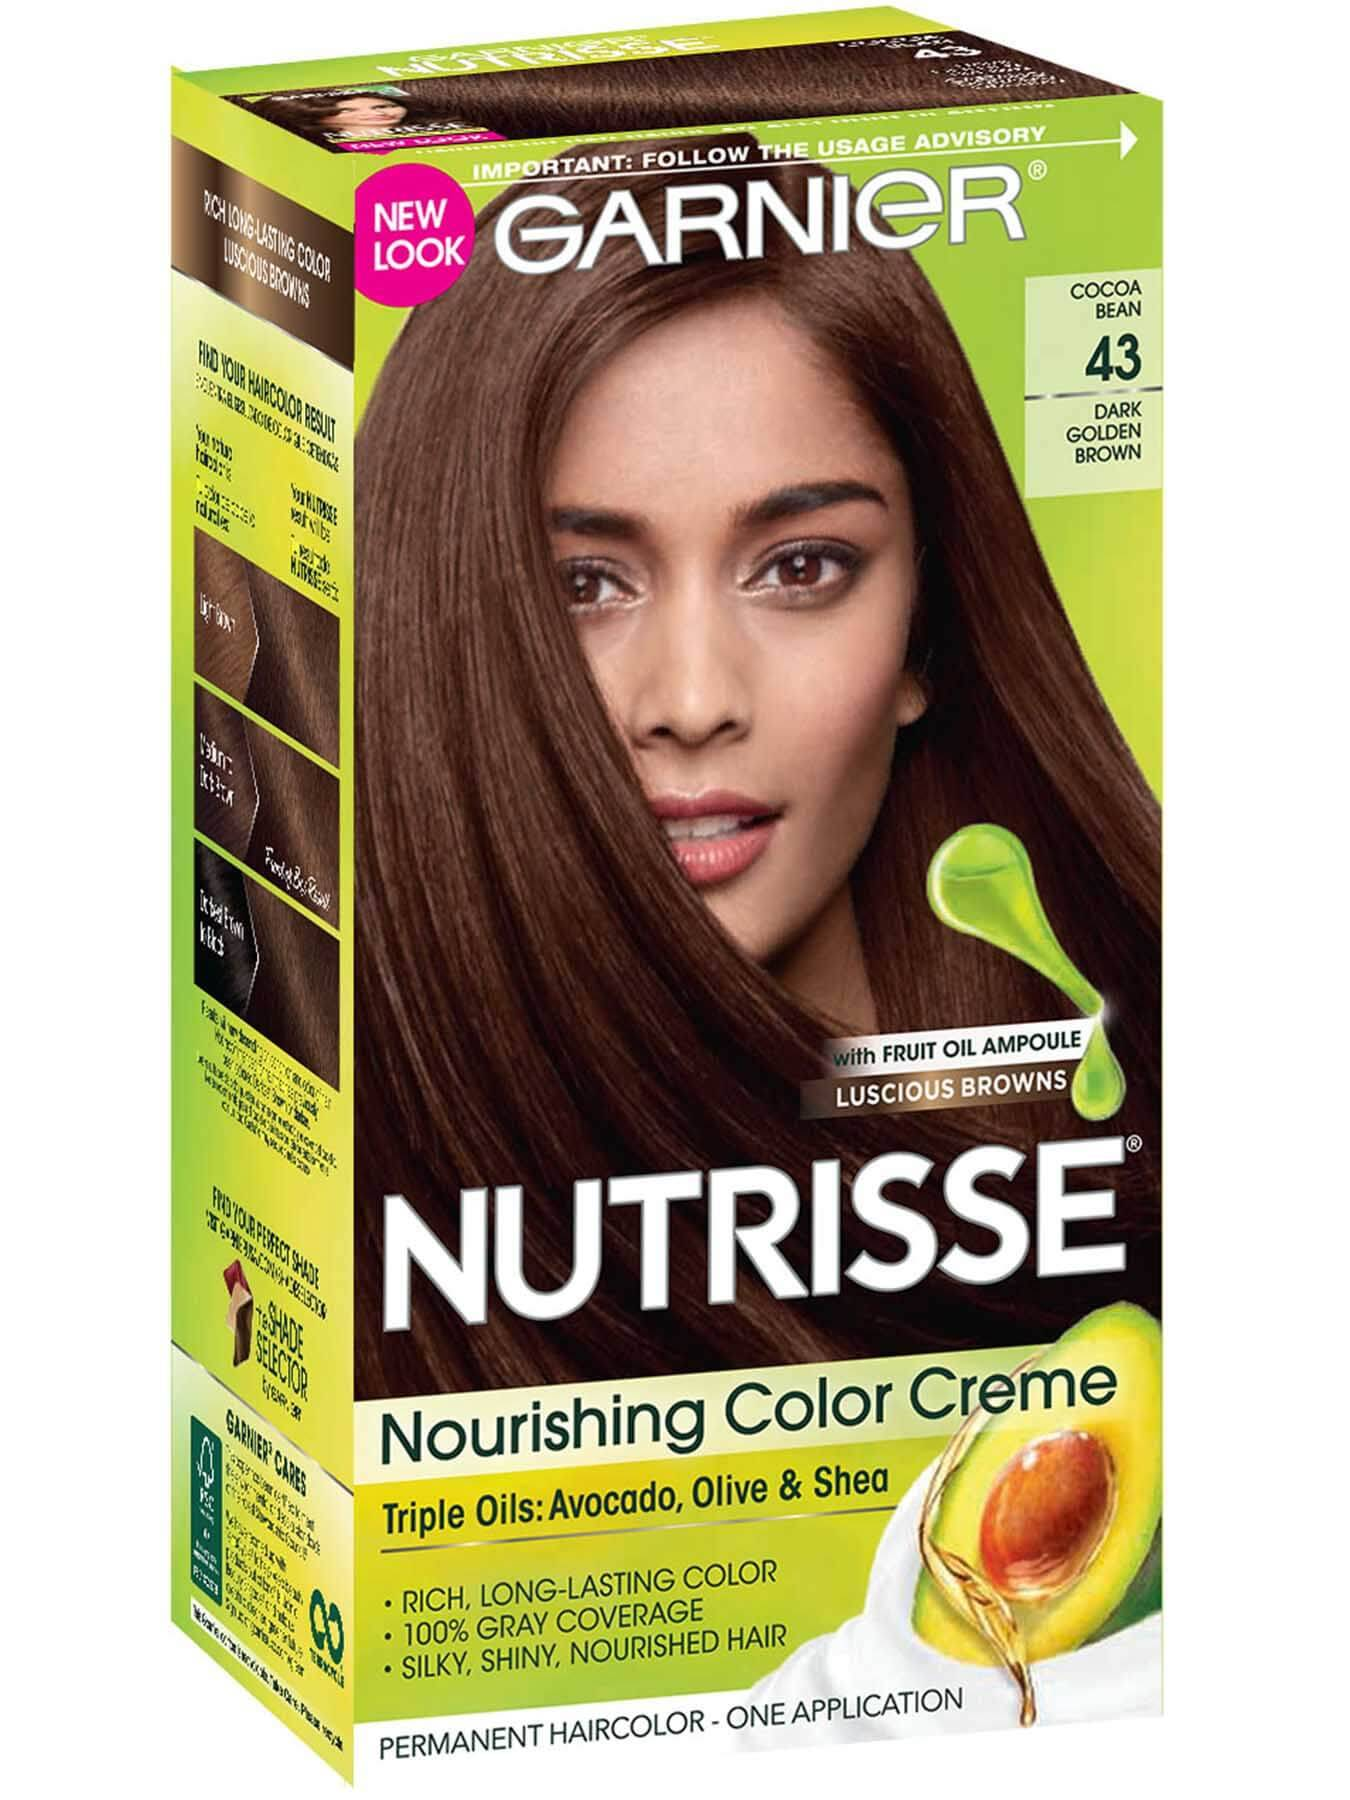 Garnier Nutrisse Nourishing Color Creme 43 - Dark Golden Brown (Cocoa Bean) Permanent Hair Color